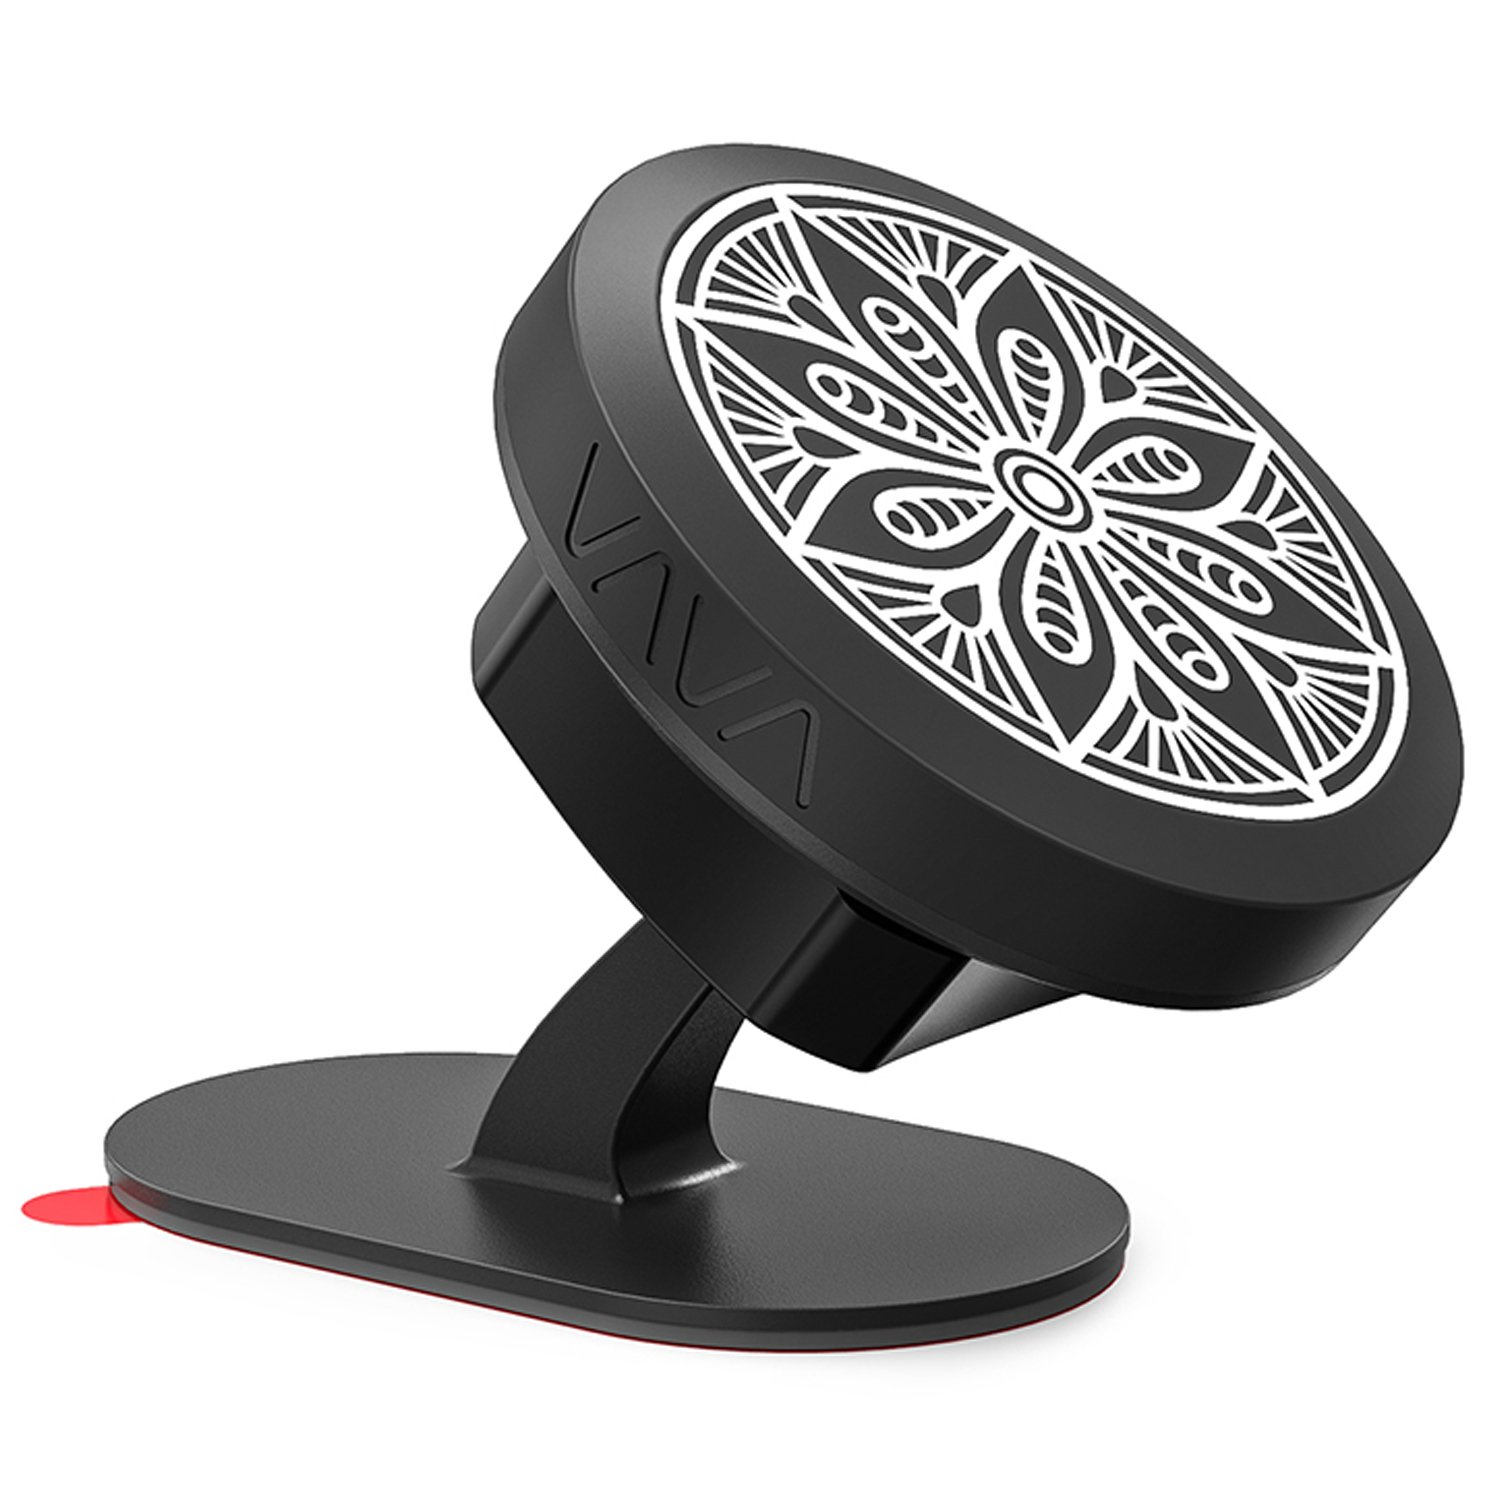 Amazon.com: VAVA Magnetic Phone Holder for Car, Universal Stick On  Dashboard Magnetic Car Phone Mount (360° Adjustable Holder with 3M Adhesive  Covering and ...